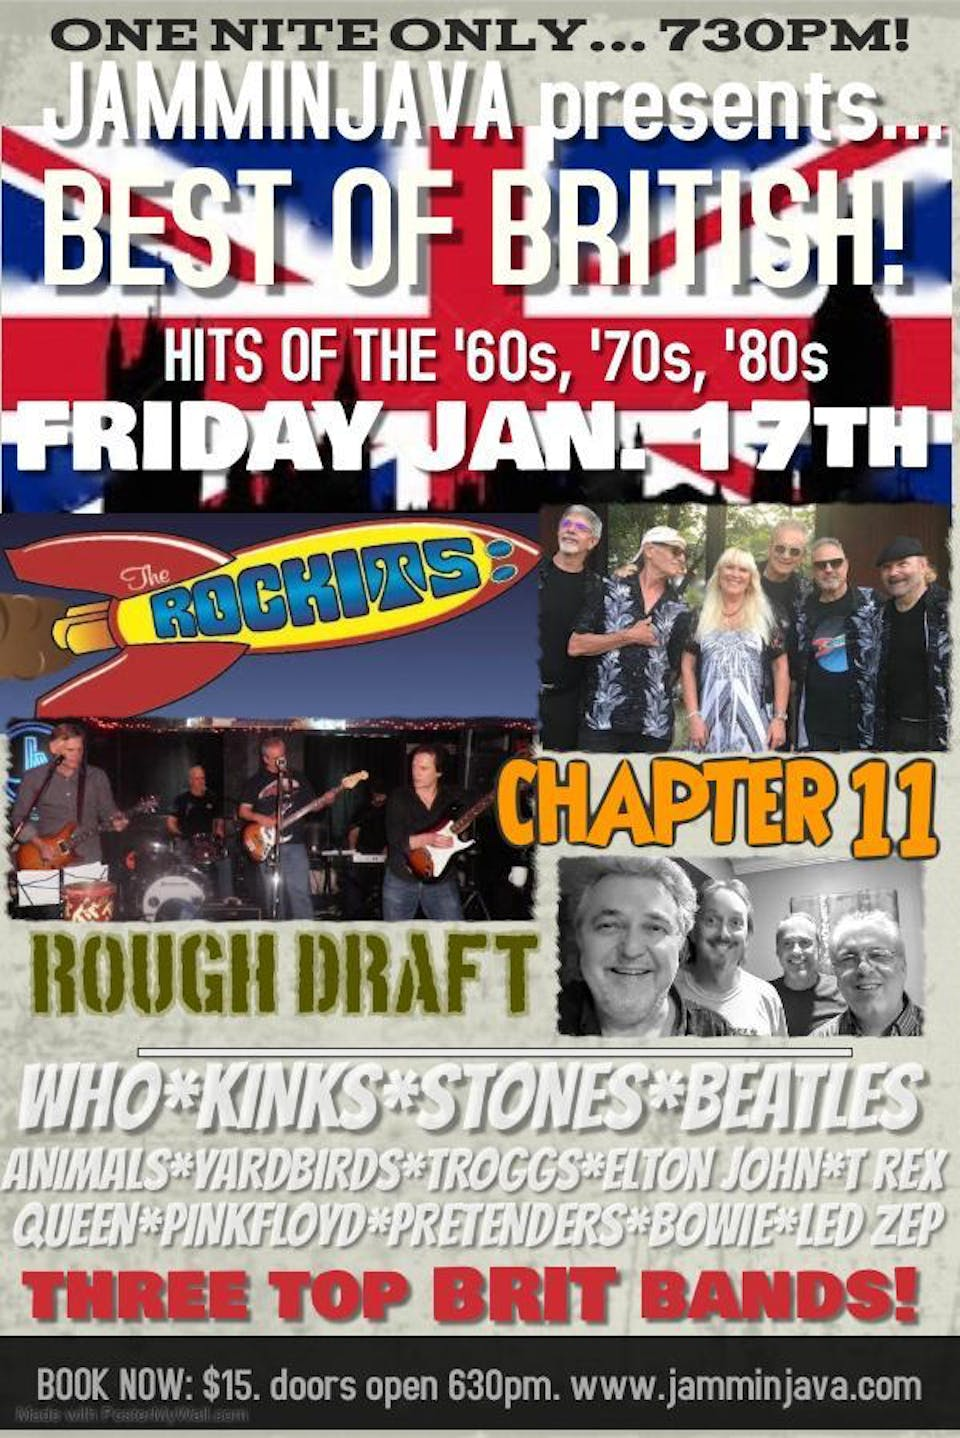 Best of British feat. The Rockits + Chapter 11 + Rough Draft